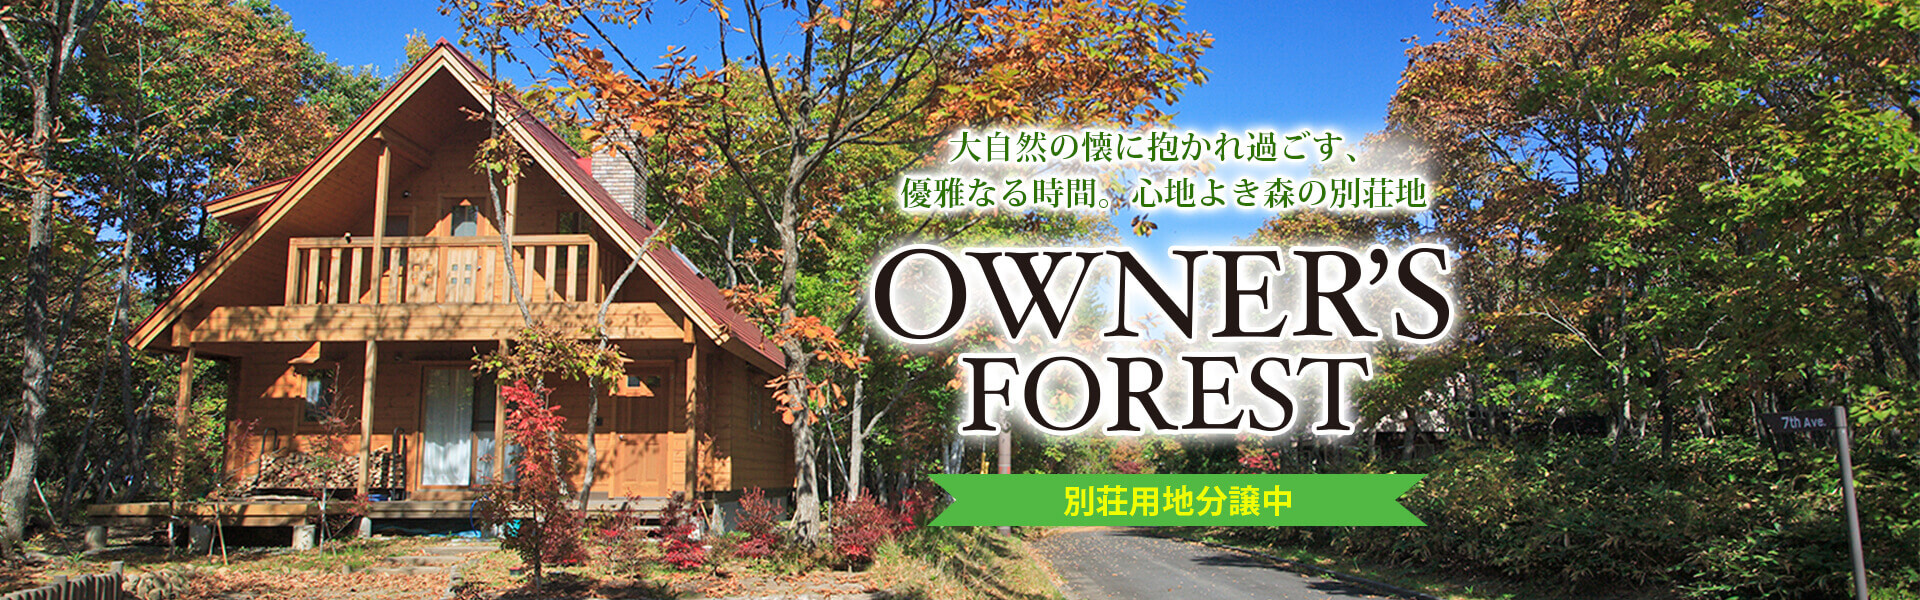 OWNER'S FOREST